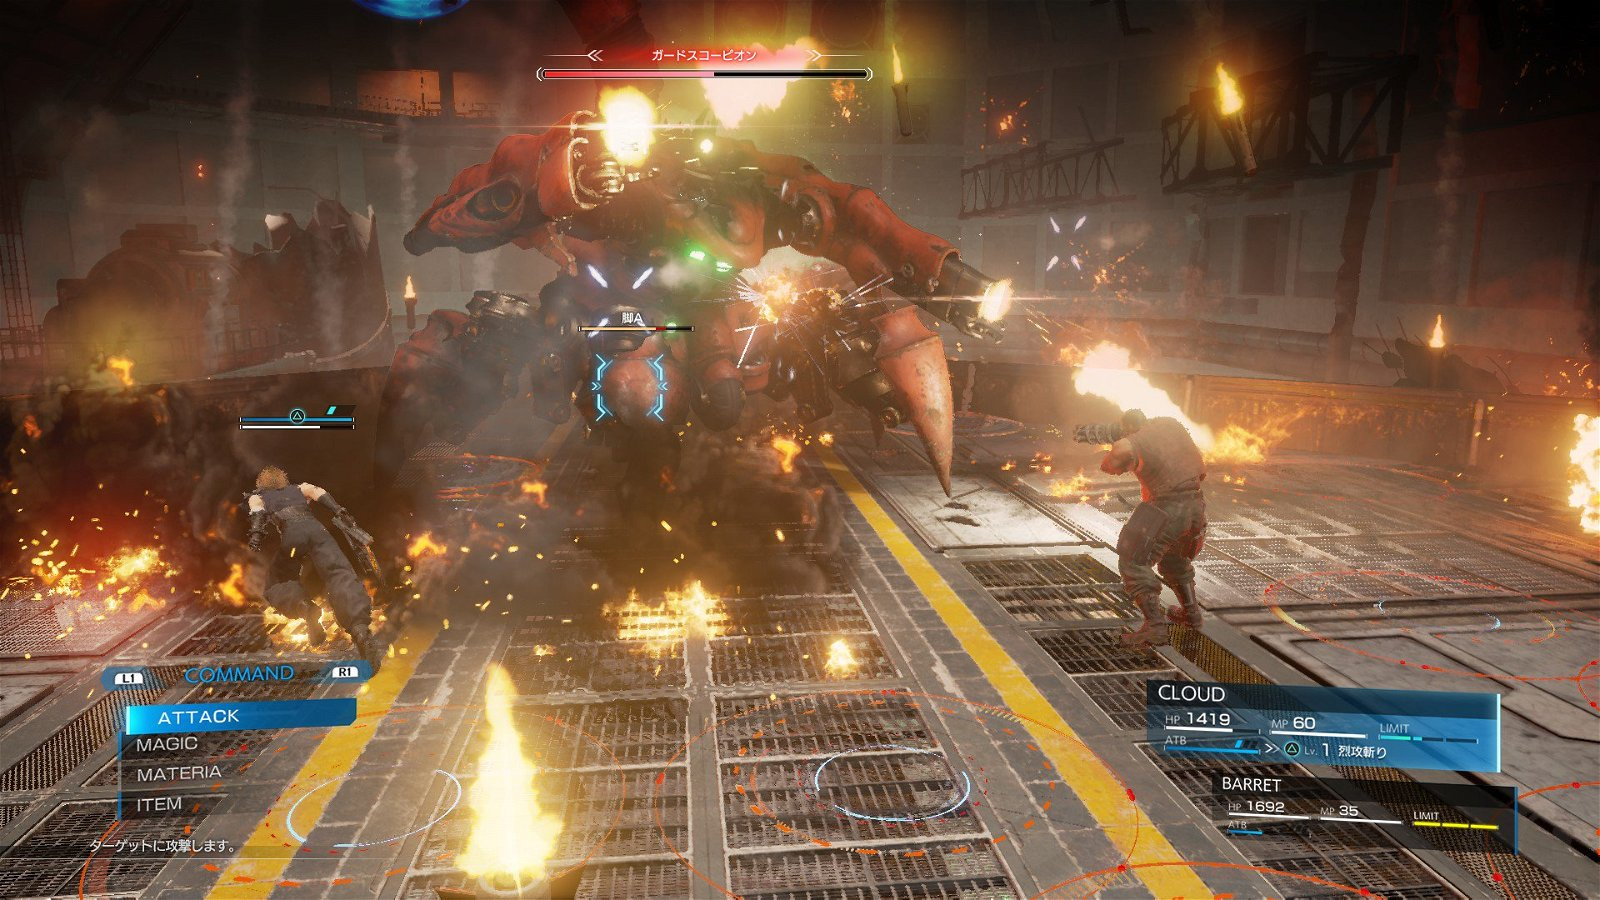 Final Fantasy VII Remake's Battles Are Action-based, Cover Optional